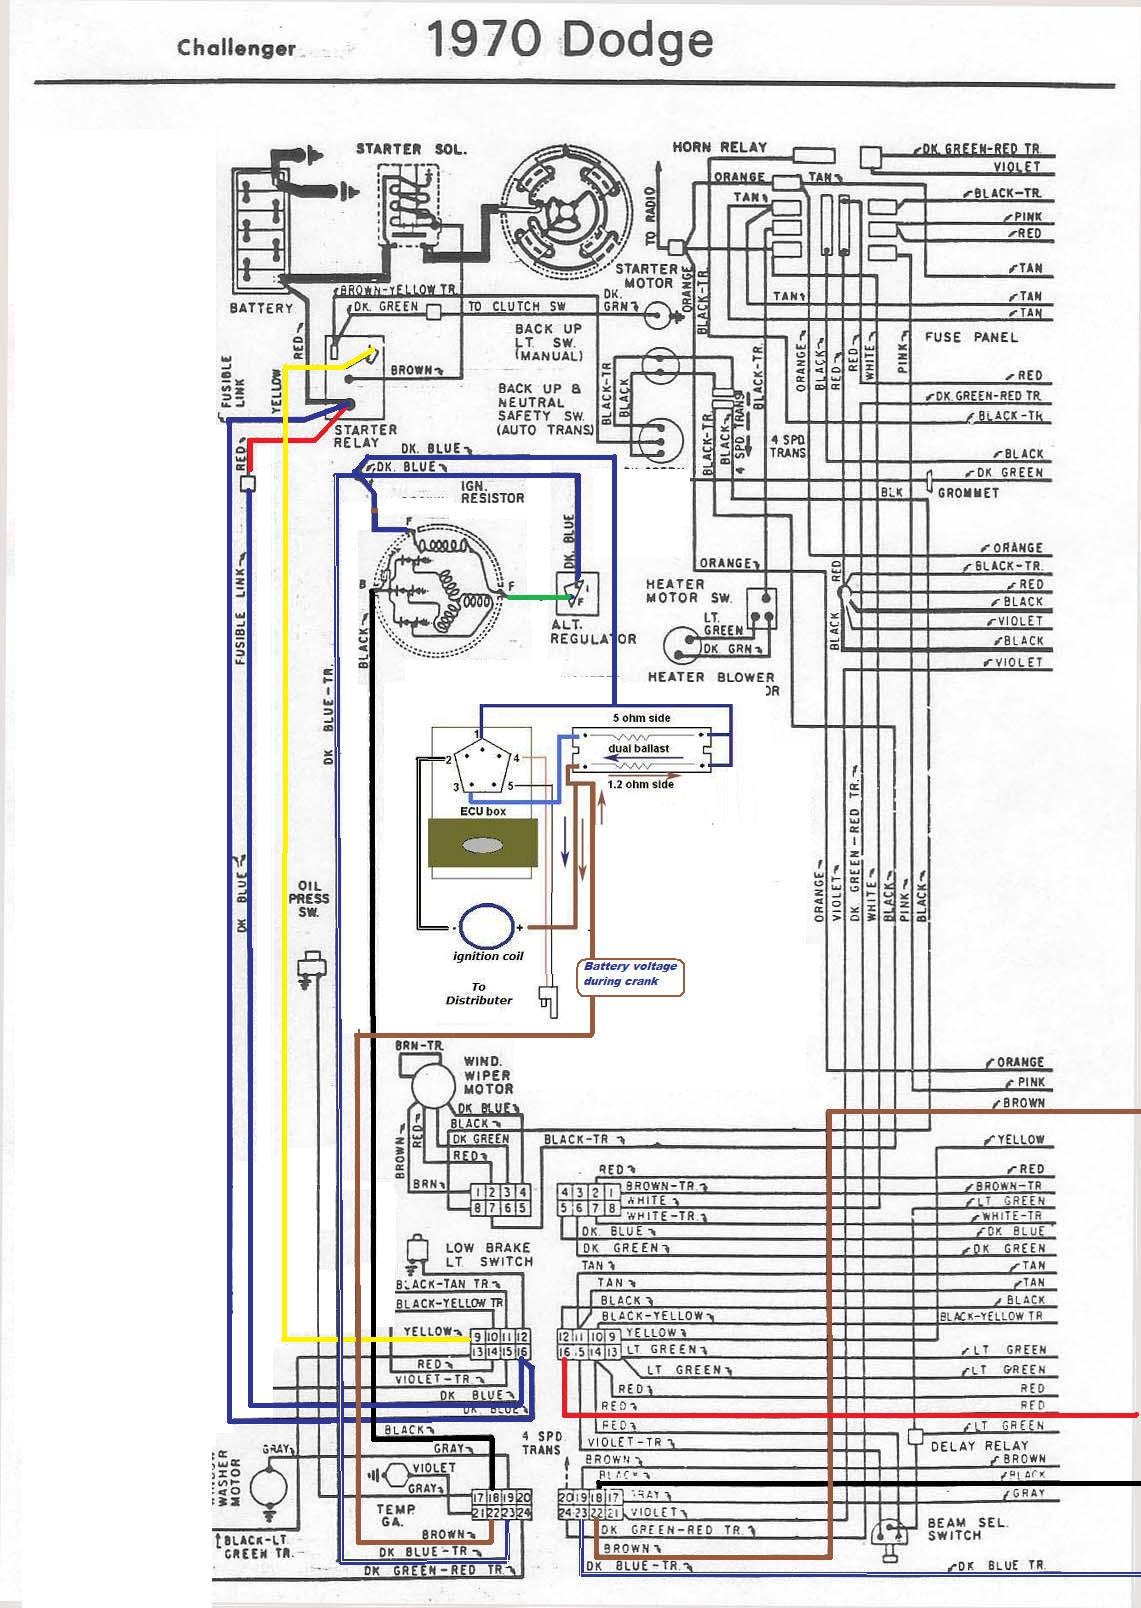 1970 Dodge Challenger Ignition Wiring Diagram Great Installation Coil Ballast Resistor On 70 Dart Simple Schema Rh 27 Lodge Finder De Schematic 1971